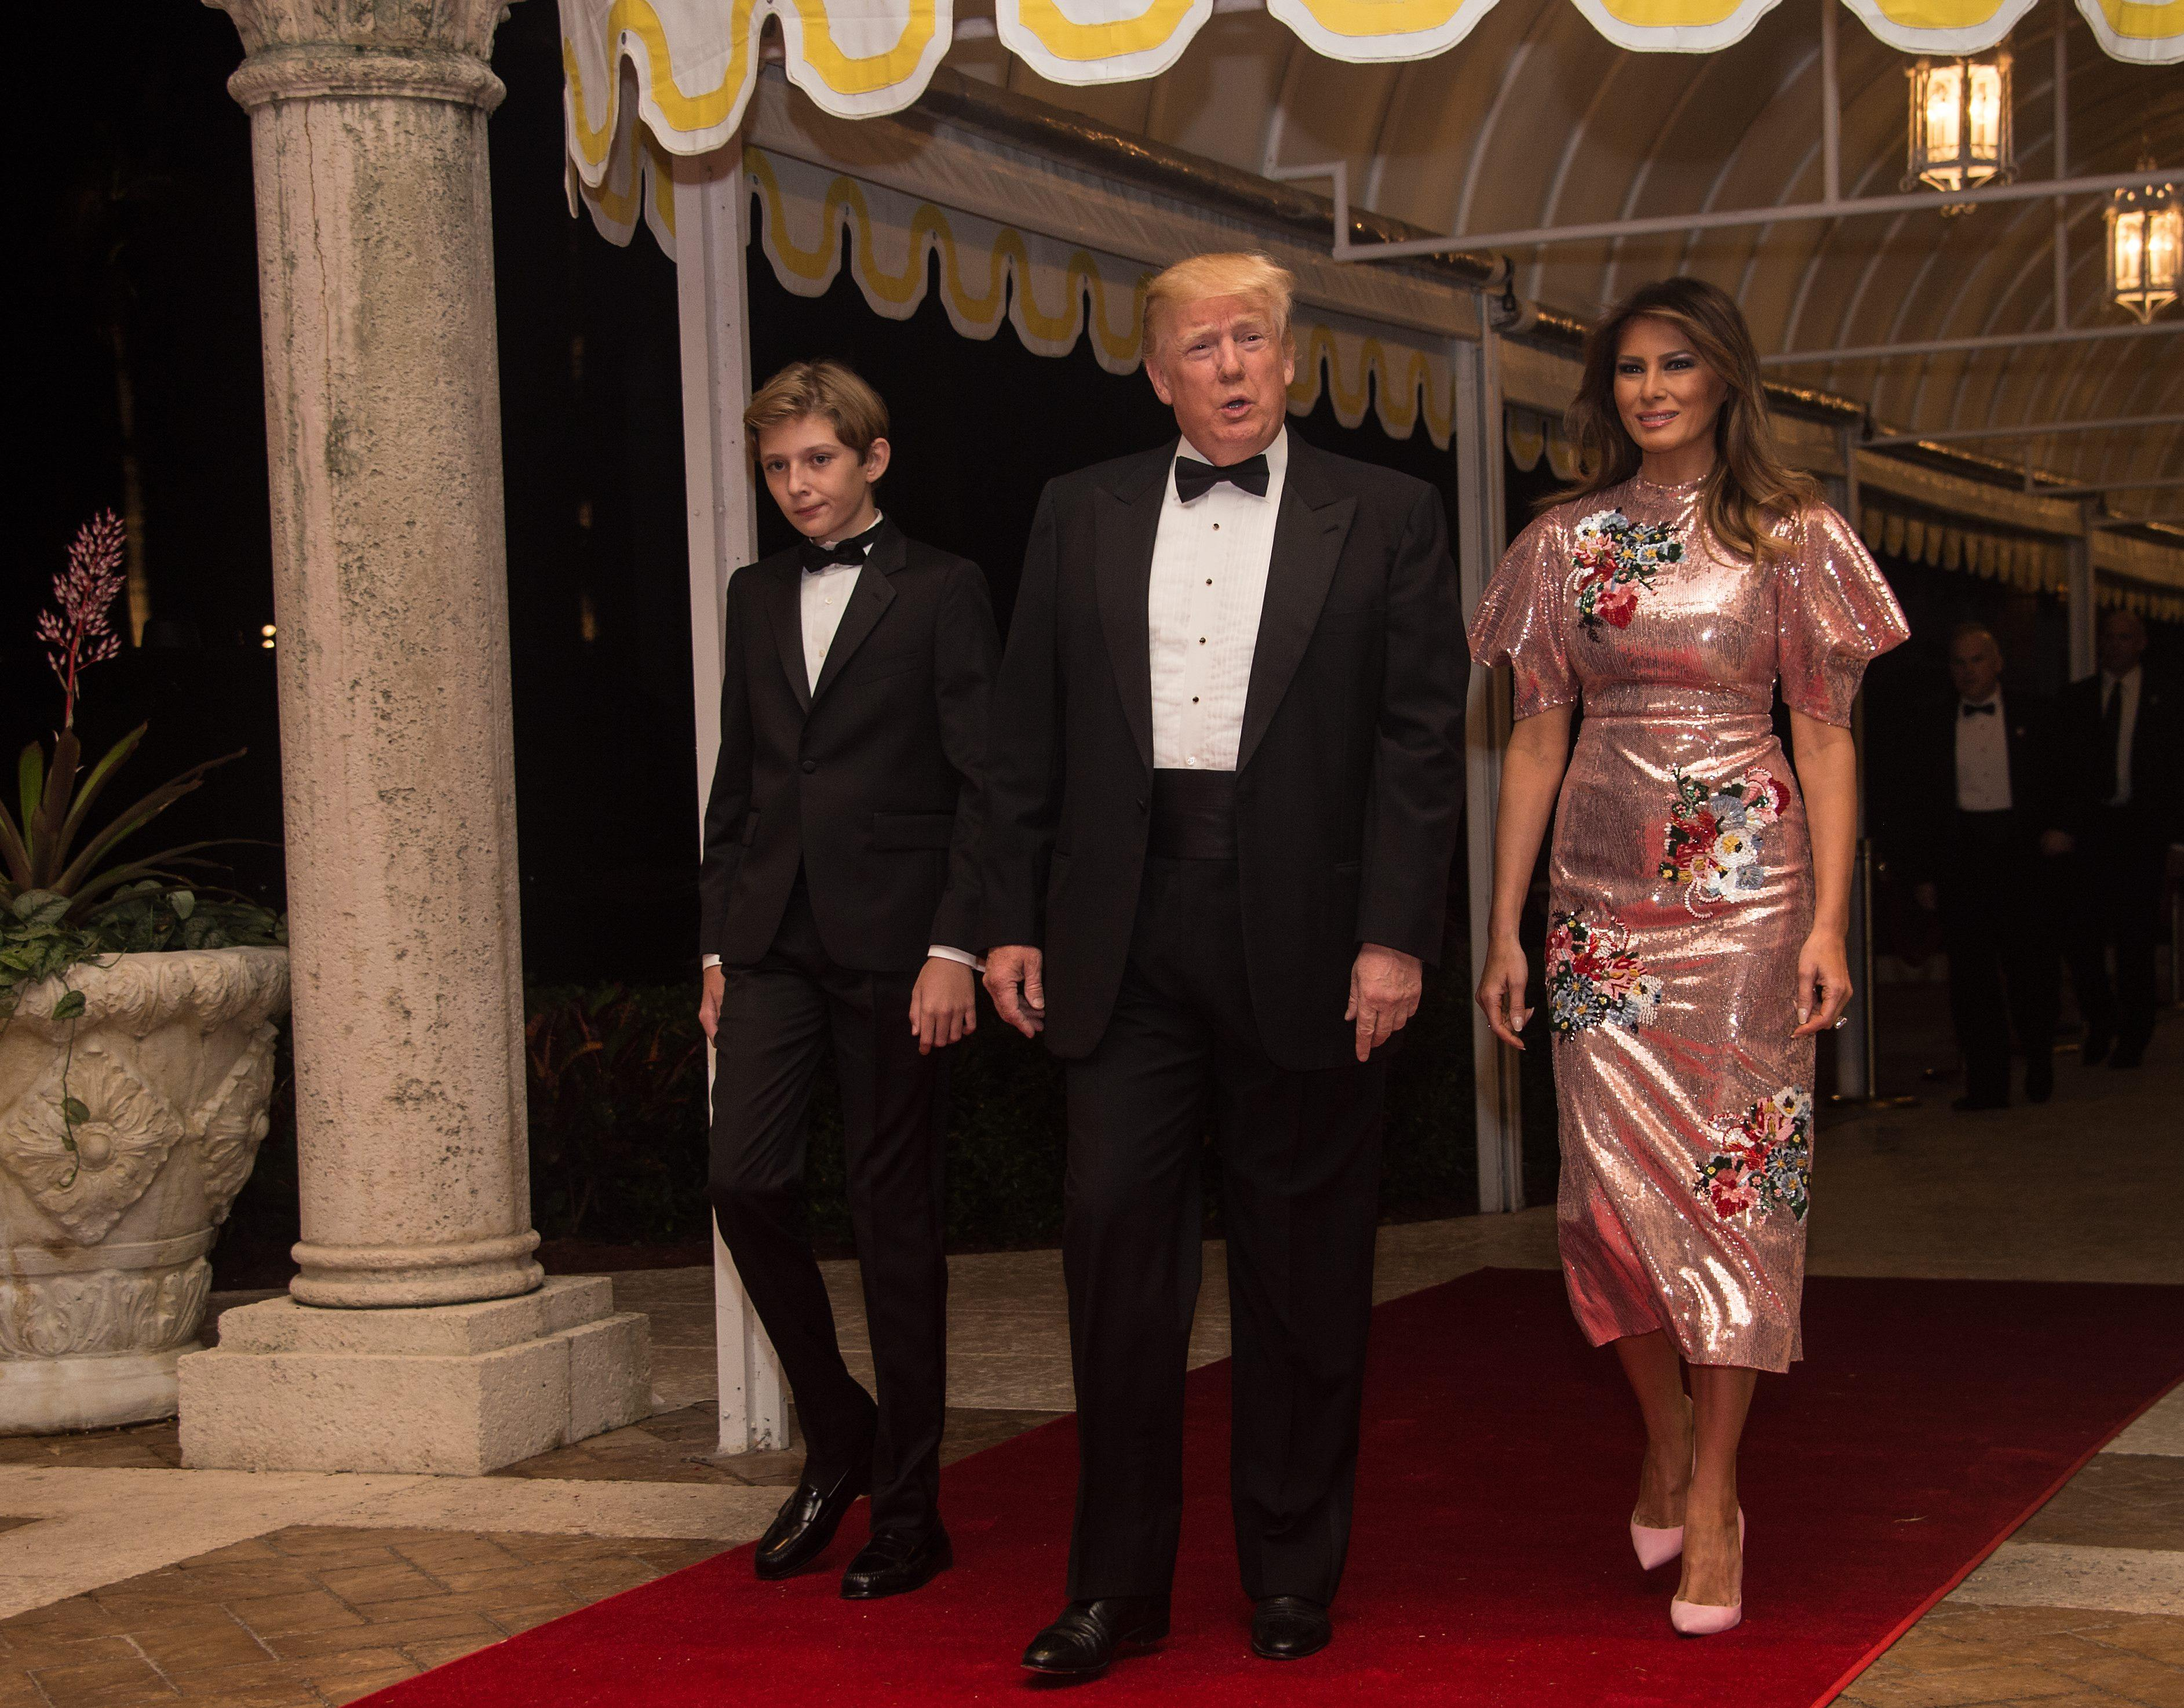 US President Donald Trump properties, First Lady Melania Trump and their son Barron arrive for a new year's party at Trump's Mar-a-Lago resort